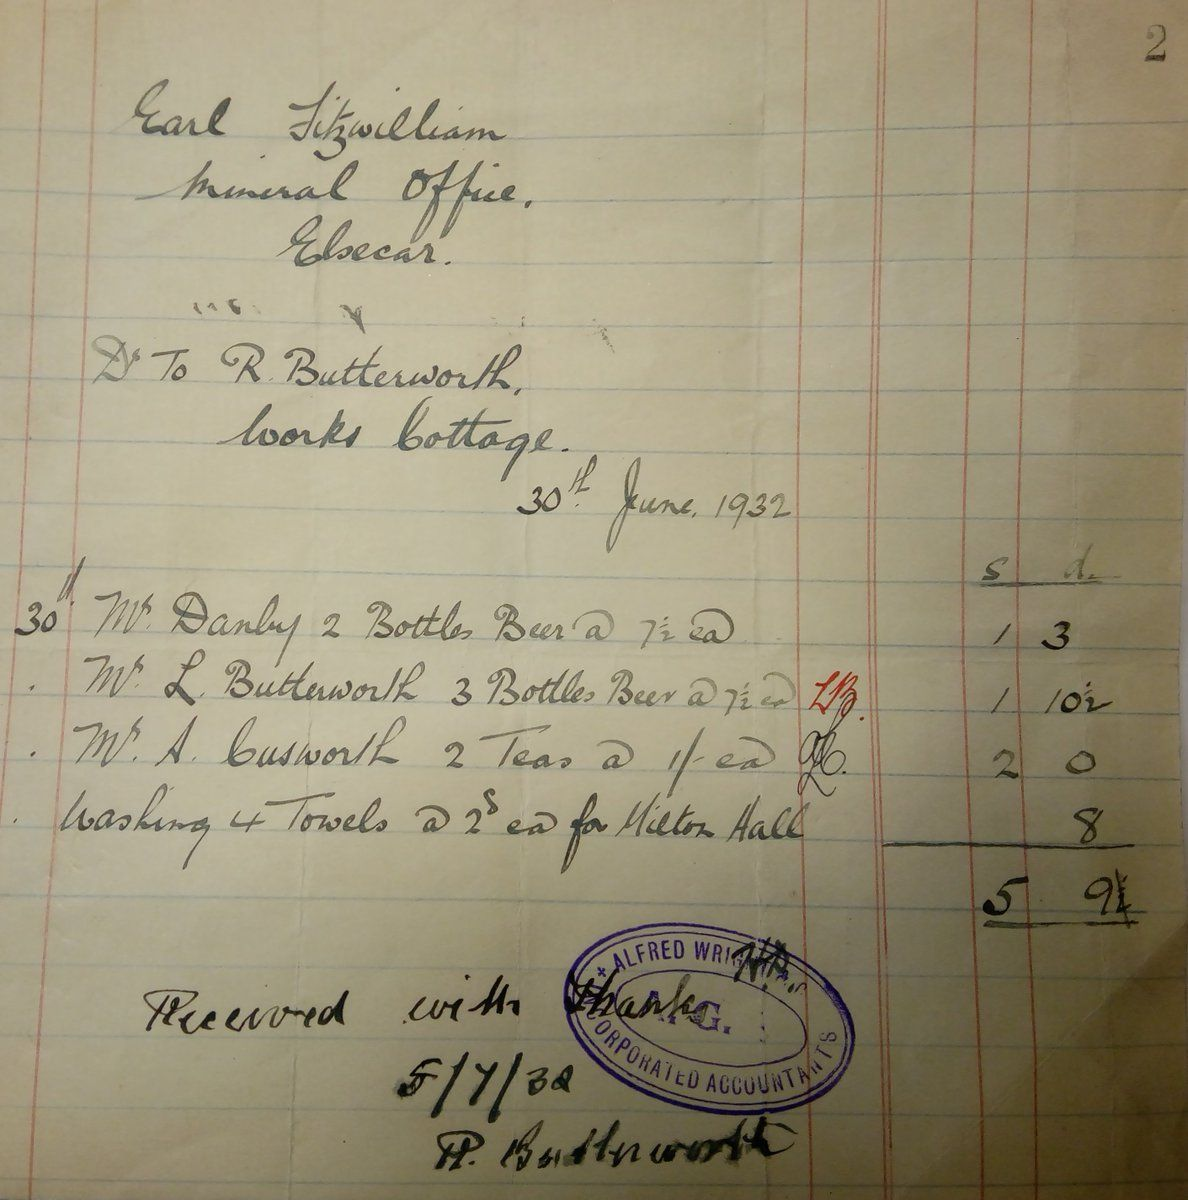 The Mineral office at Elsecar... Math, Sheet music